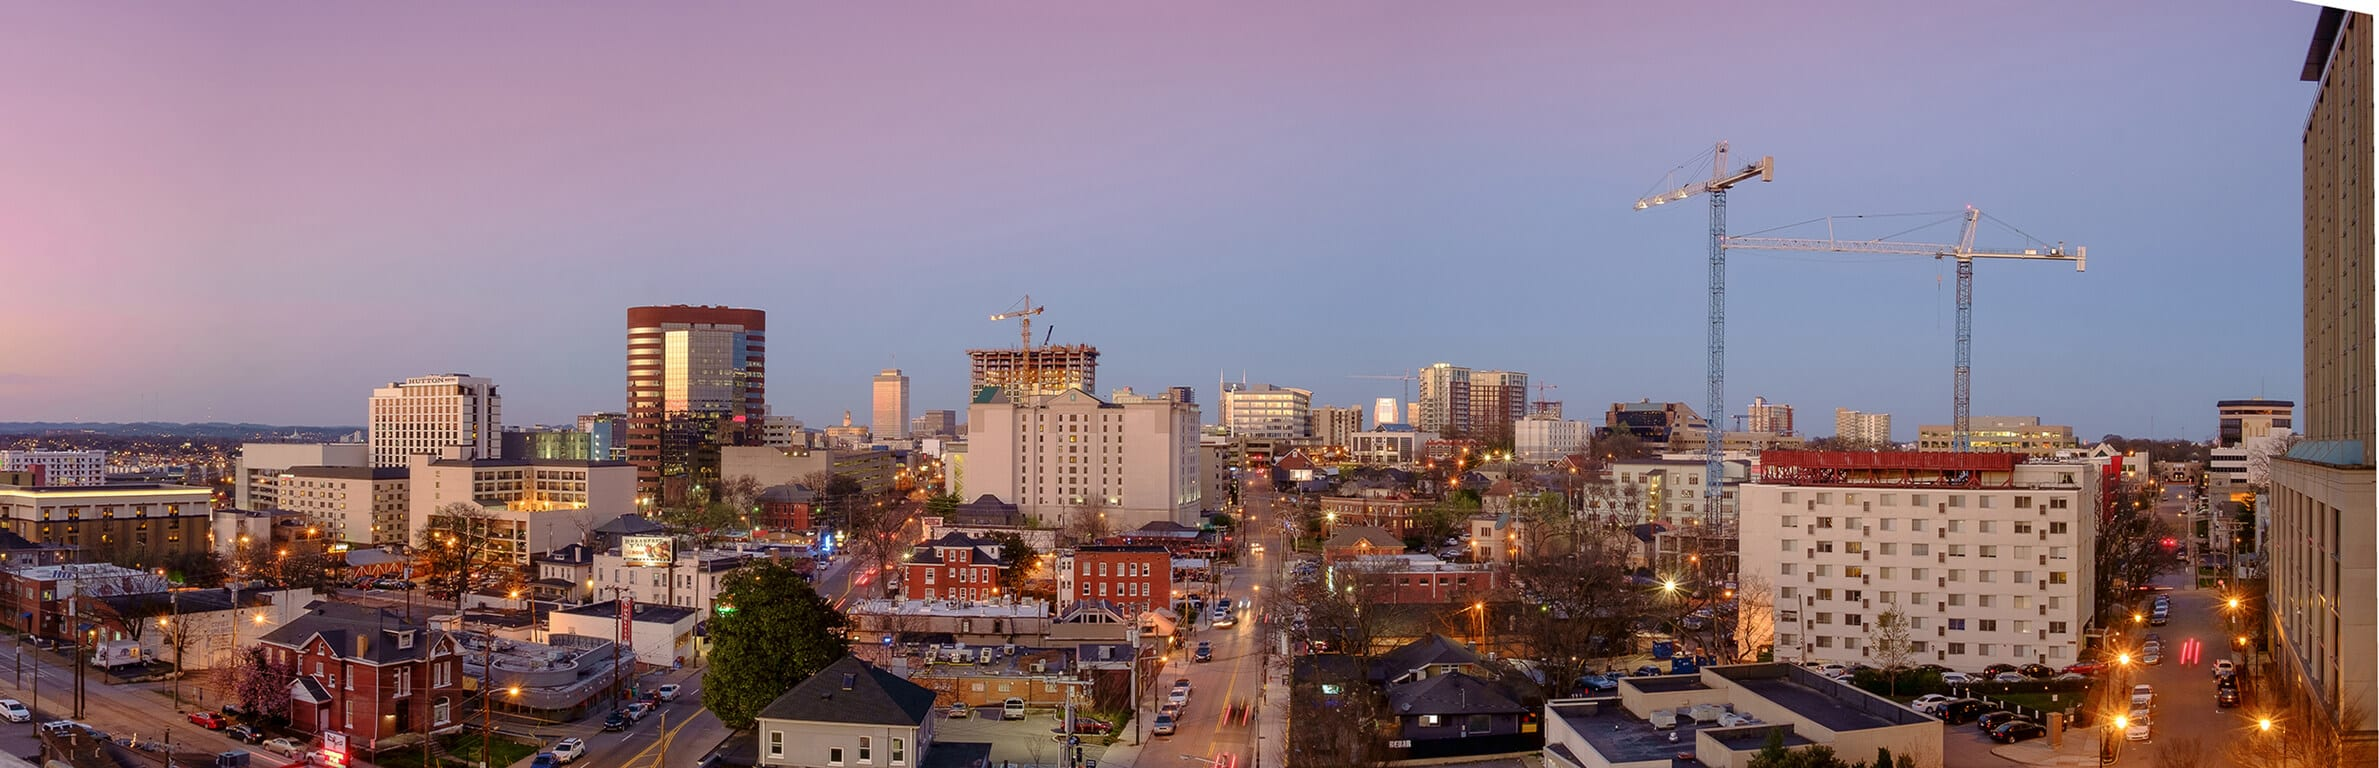 Panoramic View Of City at Aertson Midtown, Nashville, TN, 37203